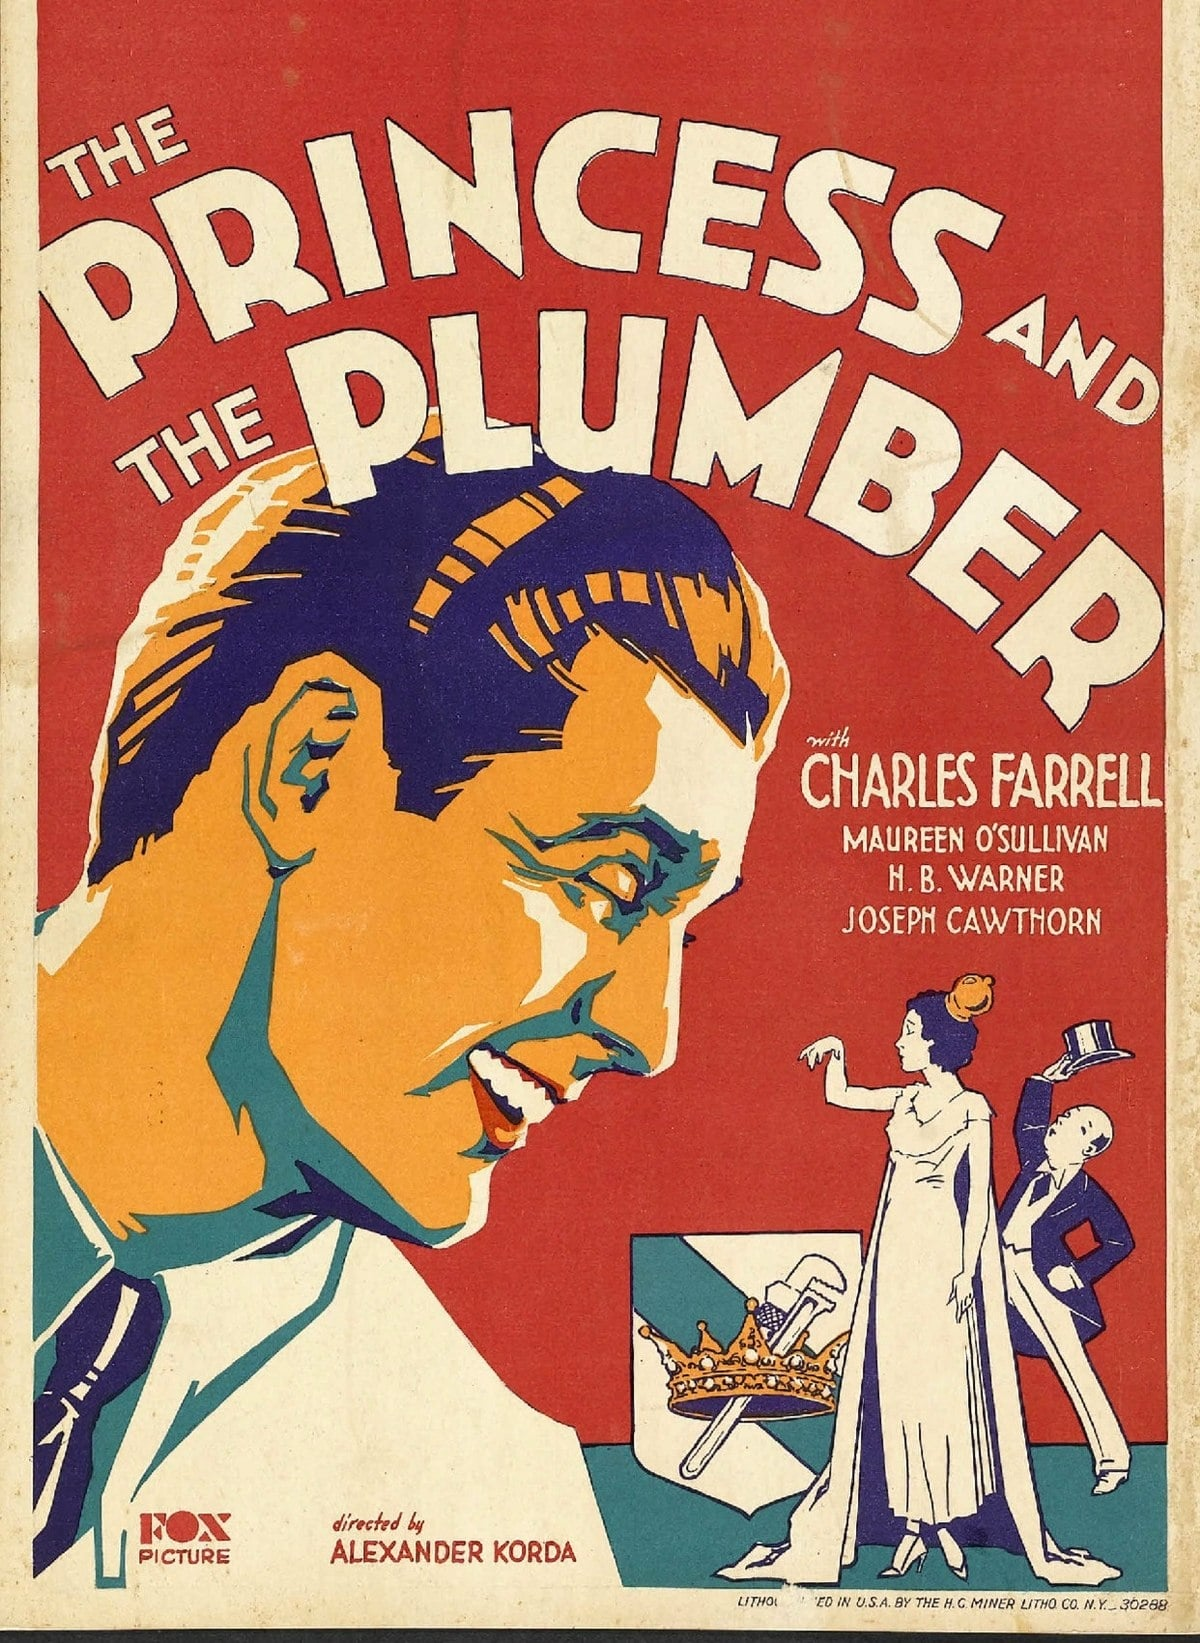 The Princess and the Plumber (1930)